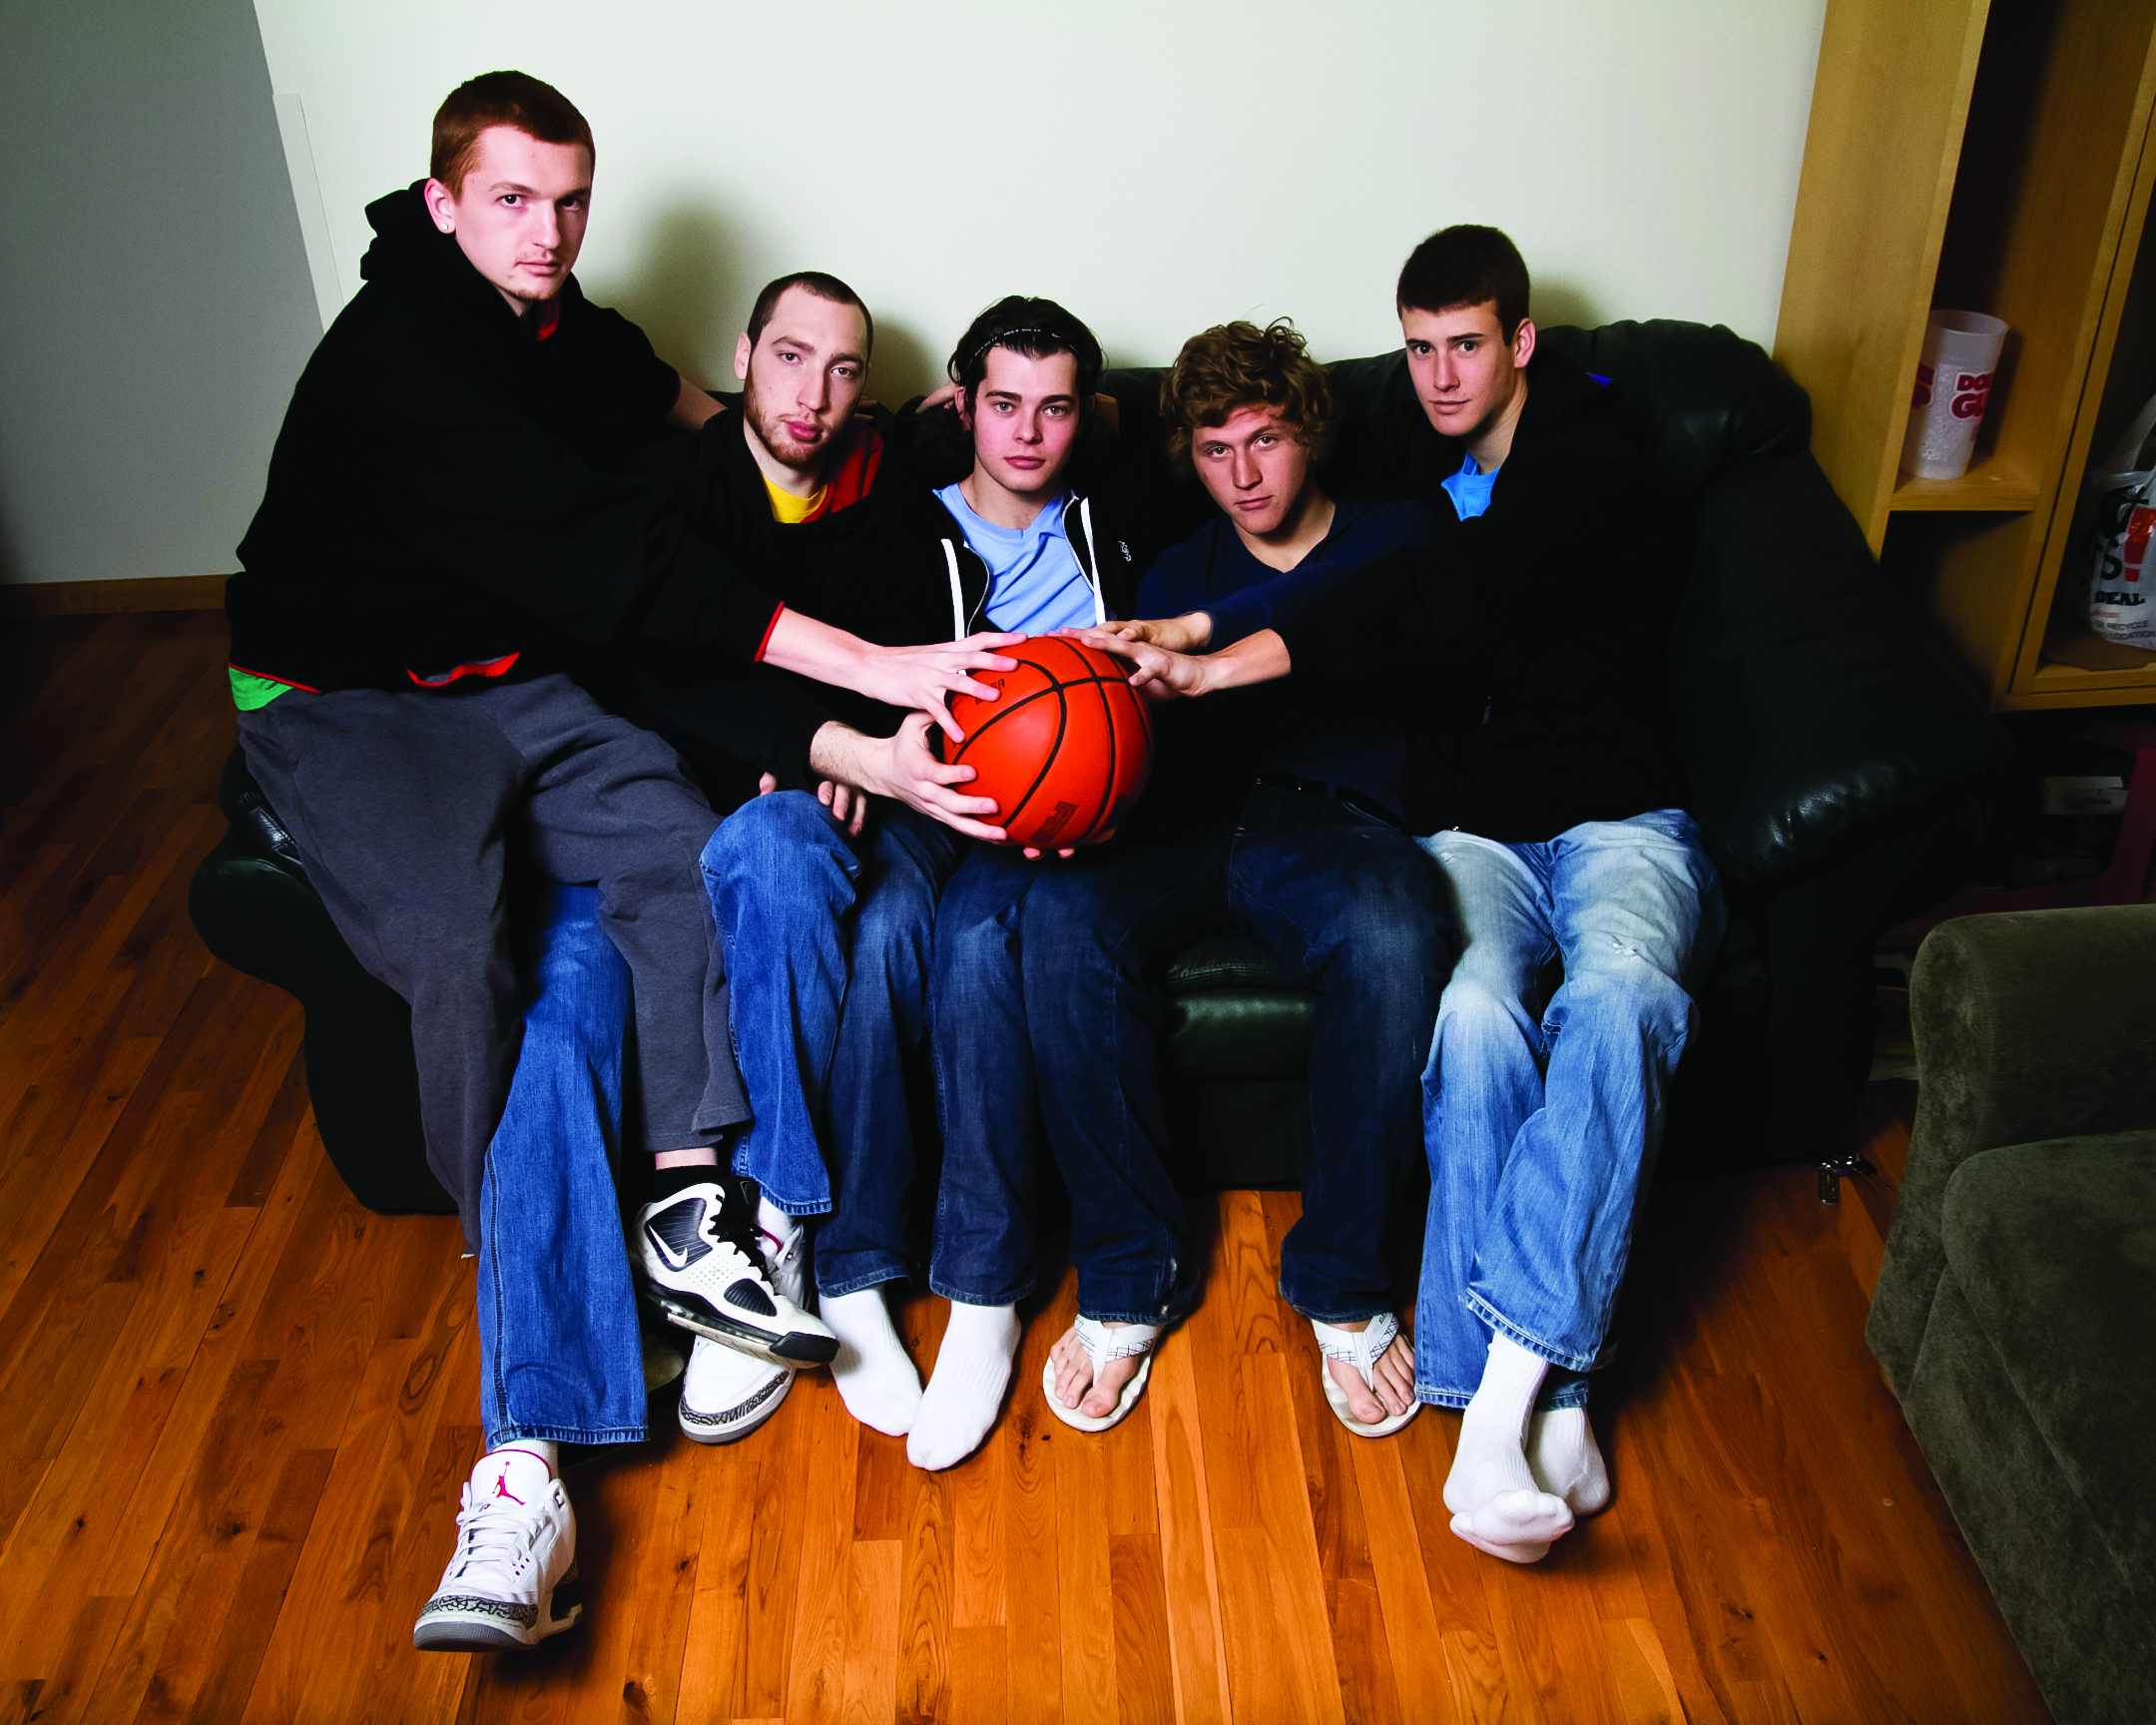 Basketball players on a couch